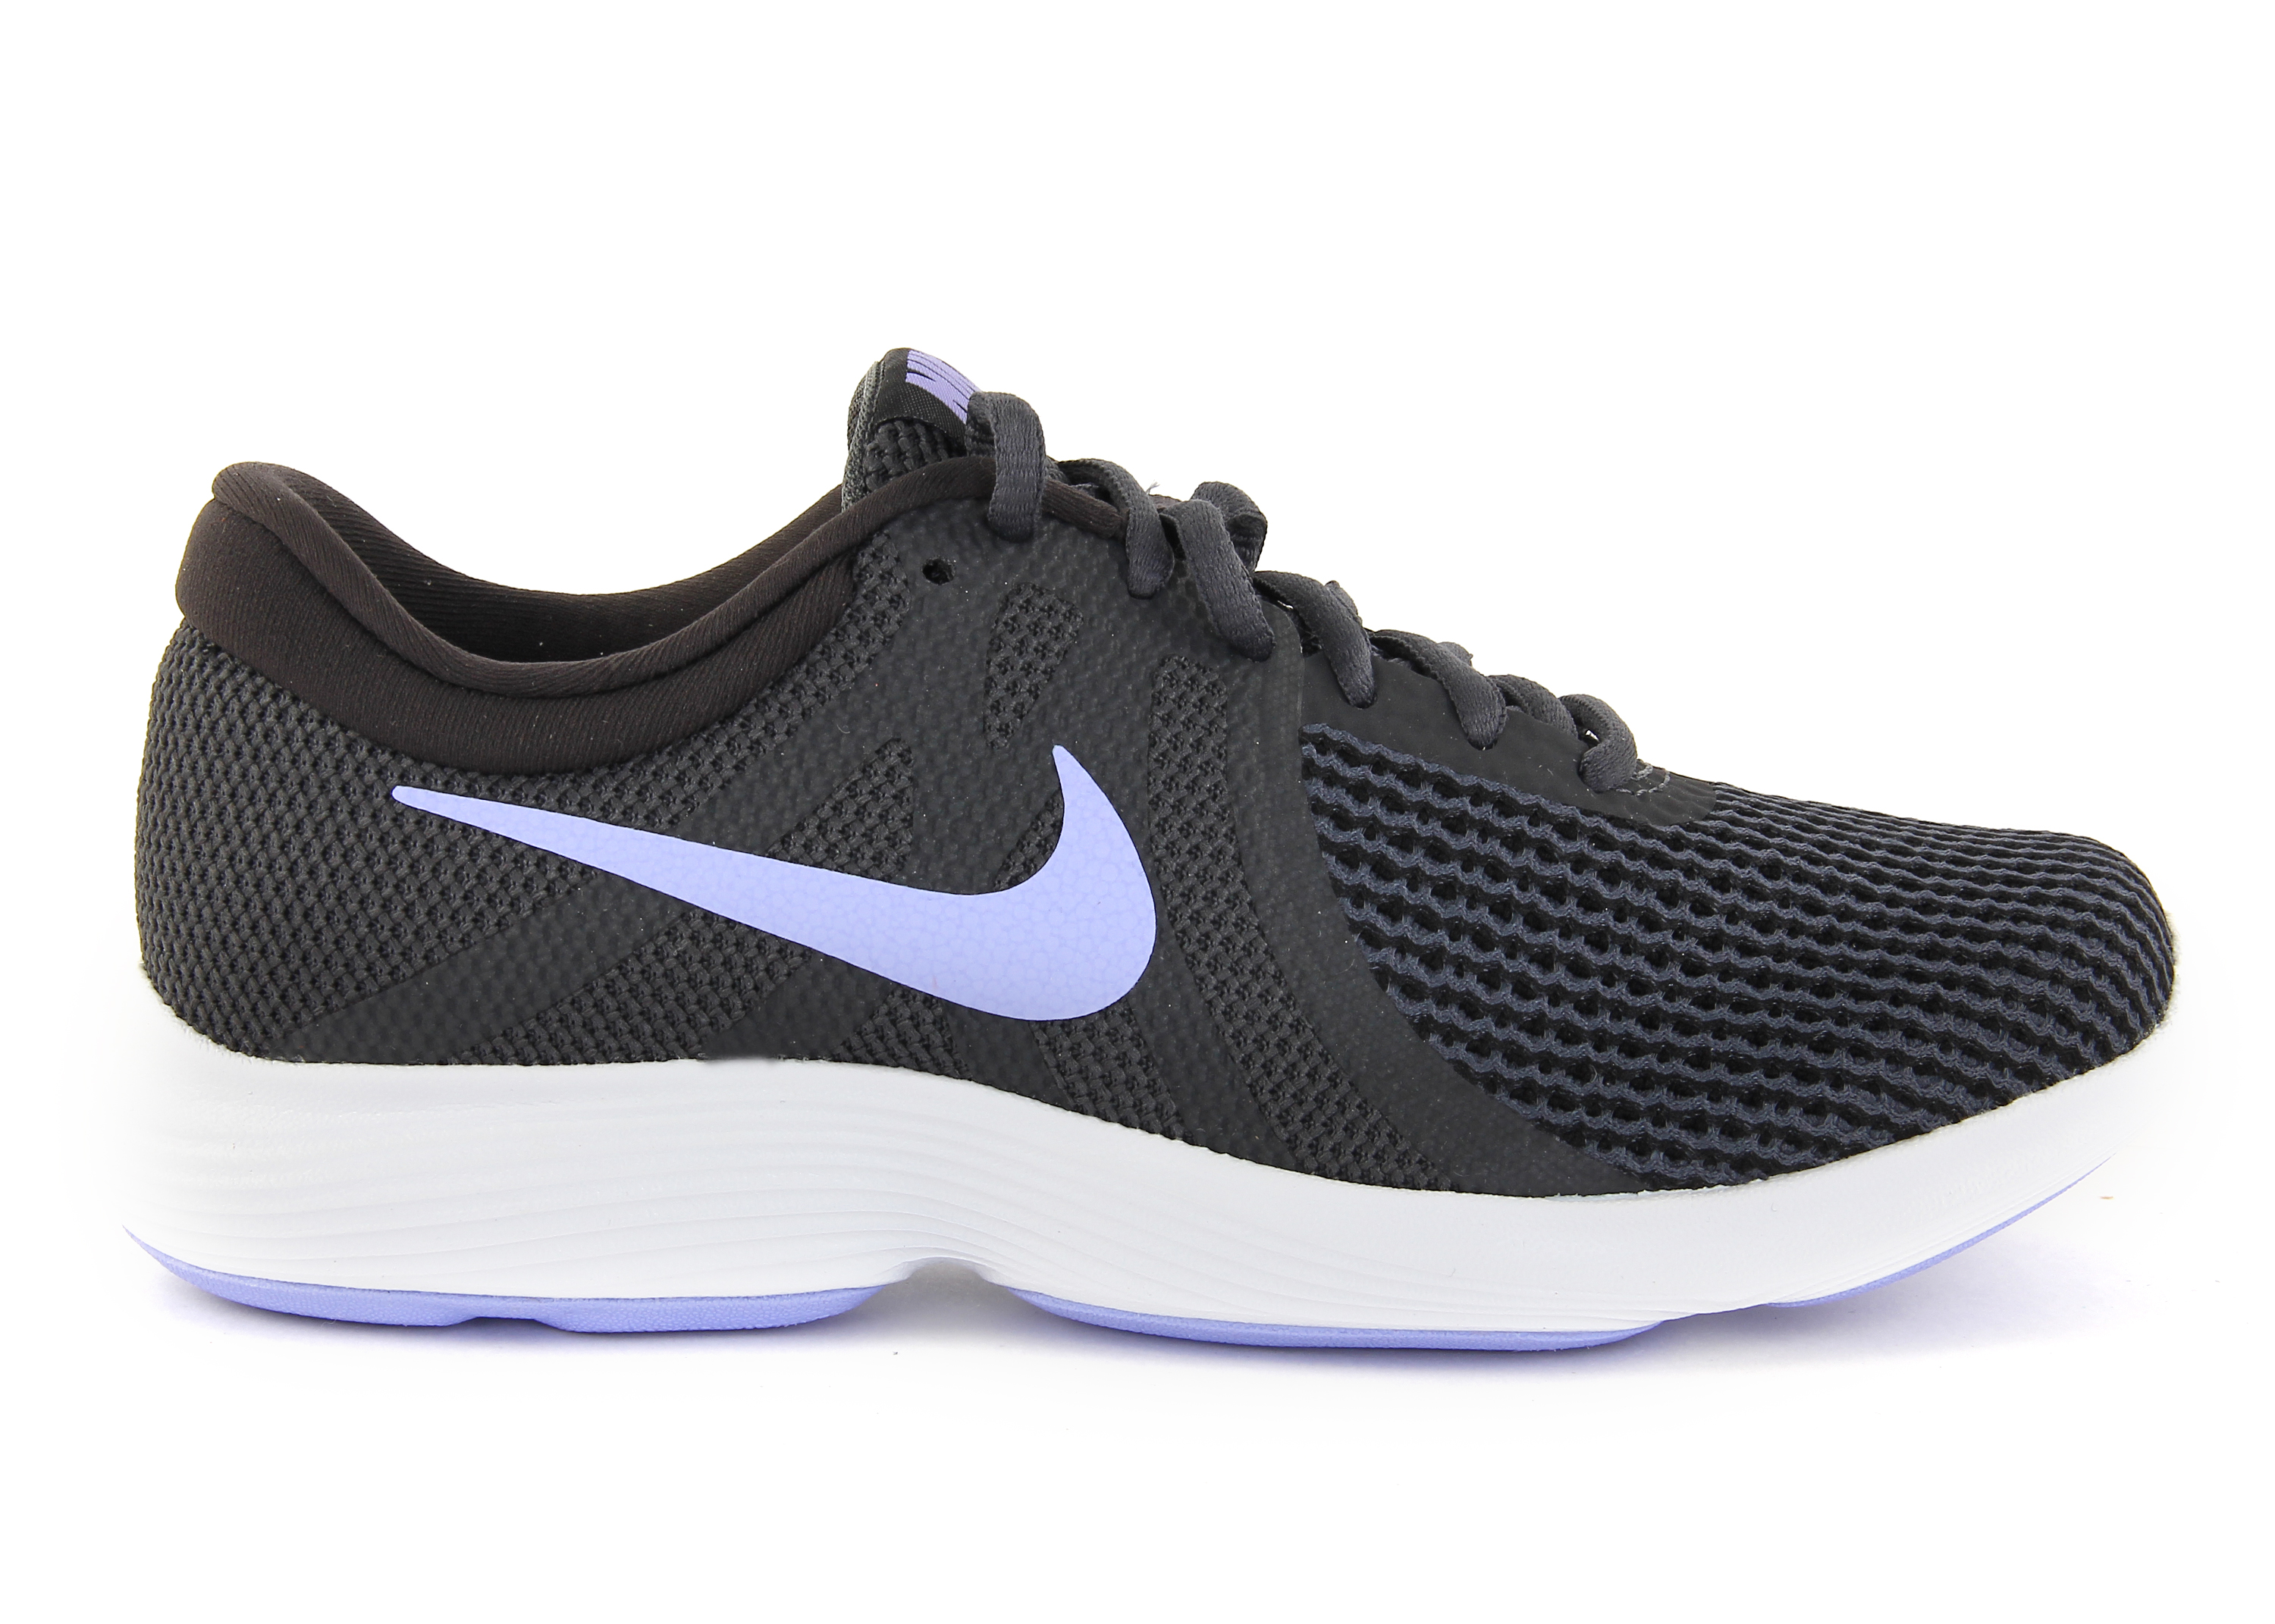 official photos 5d642 00f28 Compare. Nike Revolution 4 Ladies Running Shoe Trainer